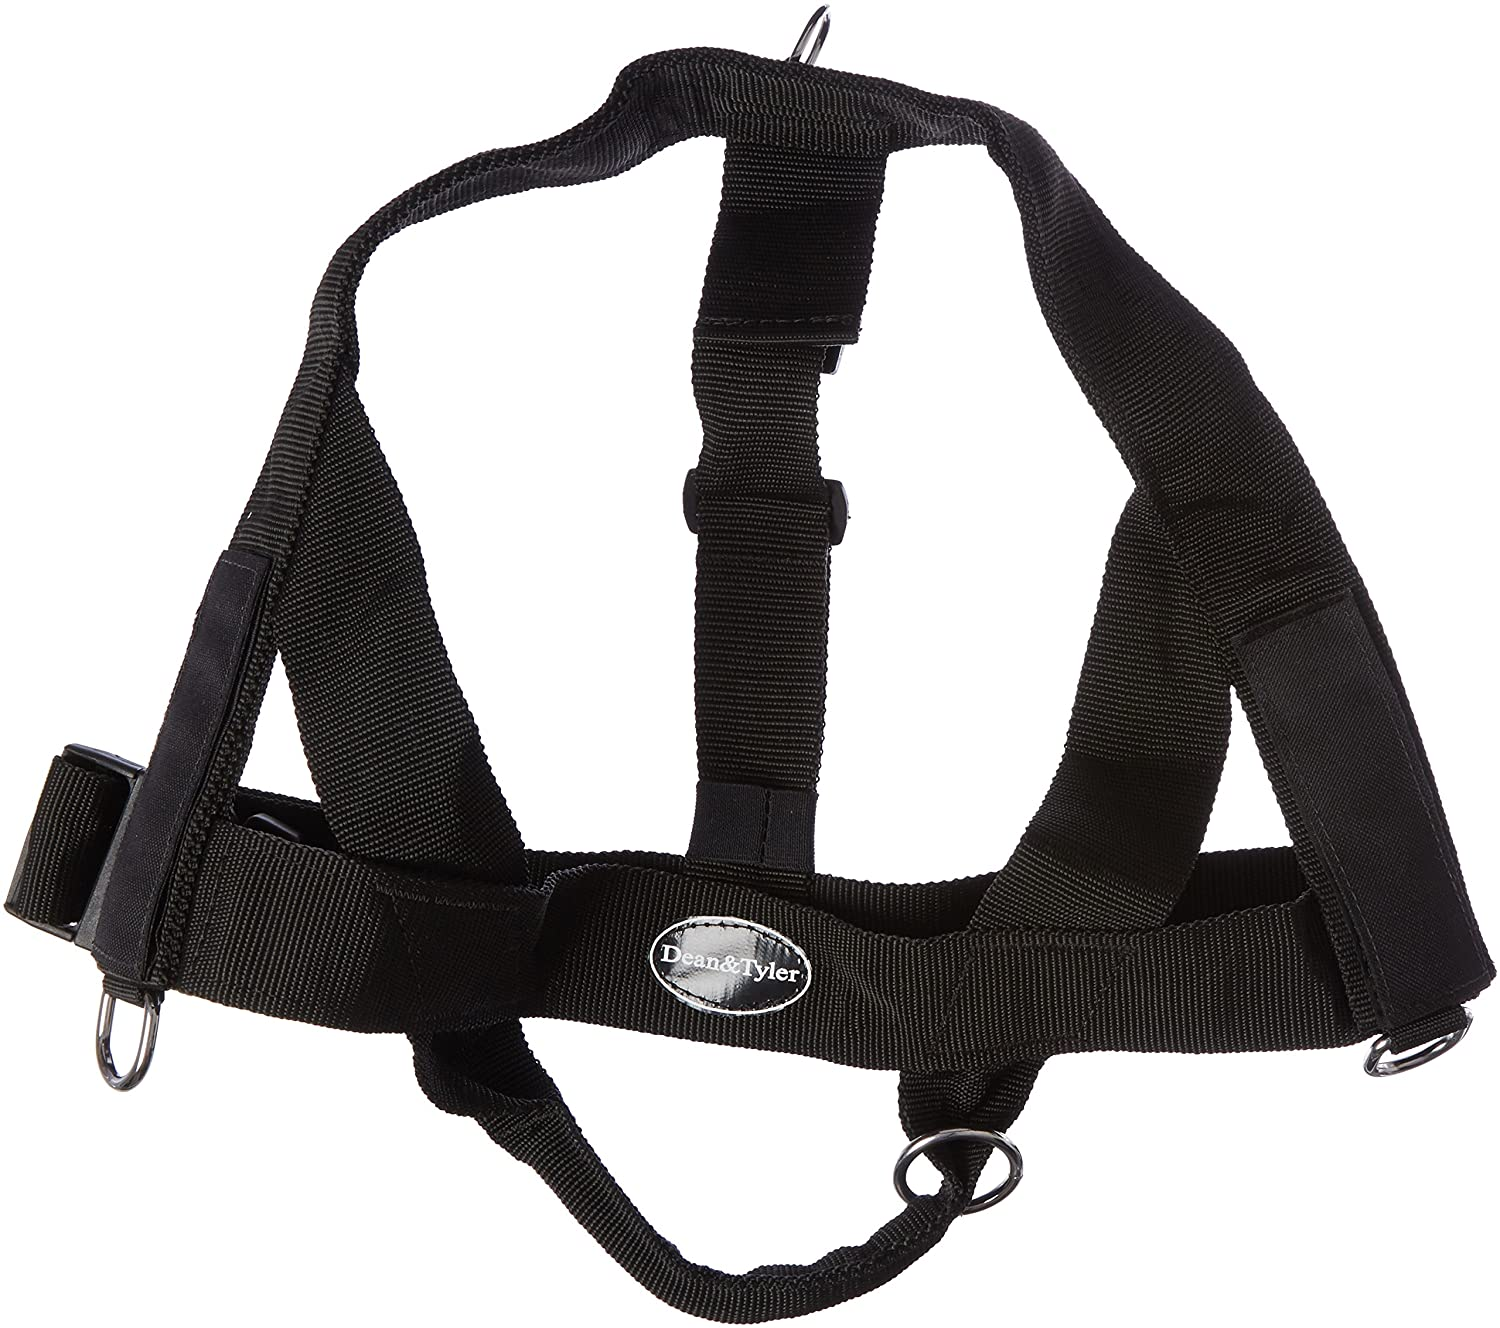 Dean & Tyler D&T Universal DADDYSG BK-XL DT Universal Fun No Pull Dog Harness, Daddy's Girl, X-Large, Fits Girth, 91cm to 119cm, Black